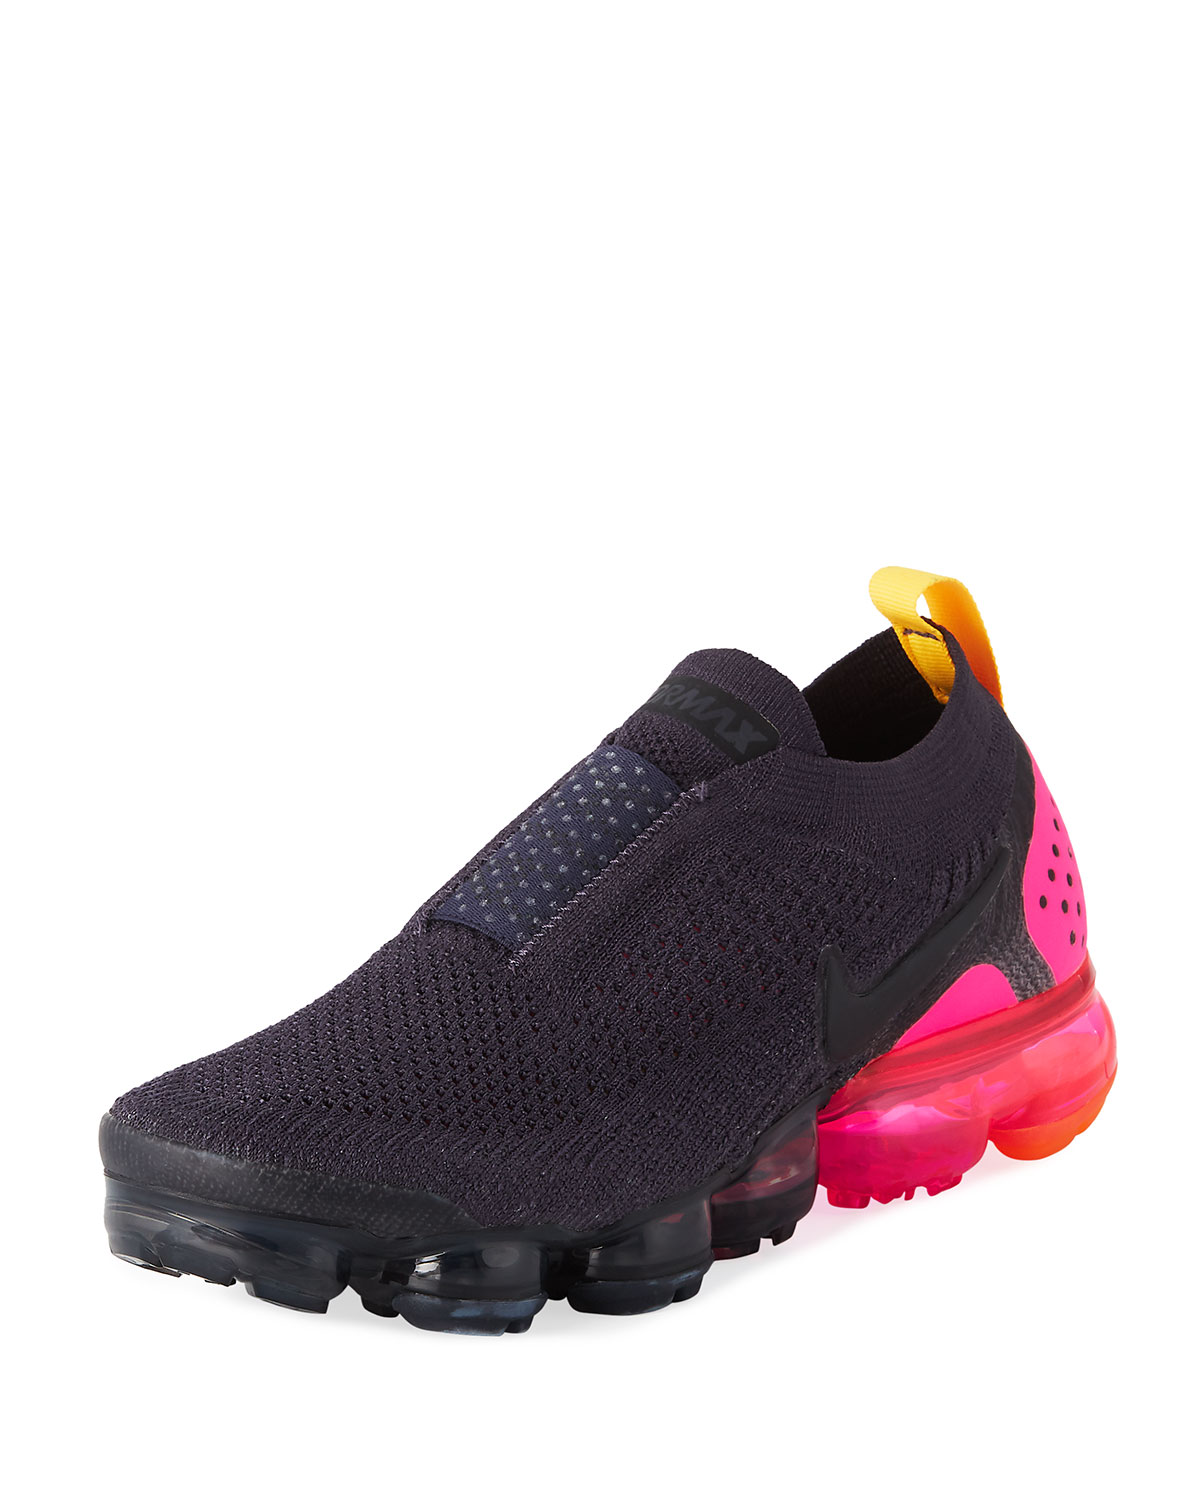 10cbdf3a3cd Nike Air Vapormax Flyknit Moc 2 Slip-On Running Sneaker